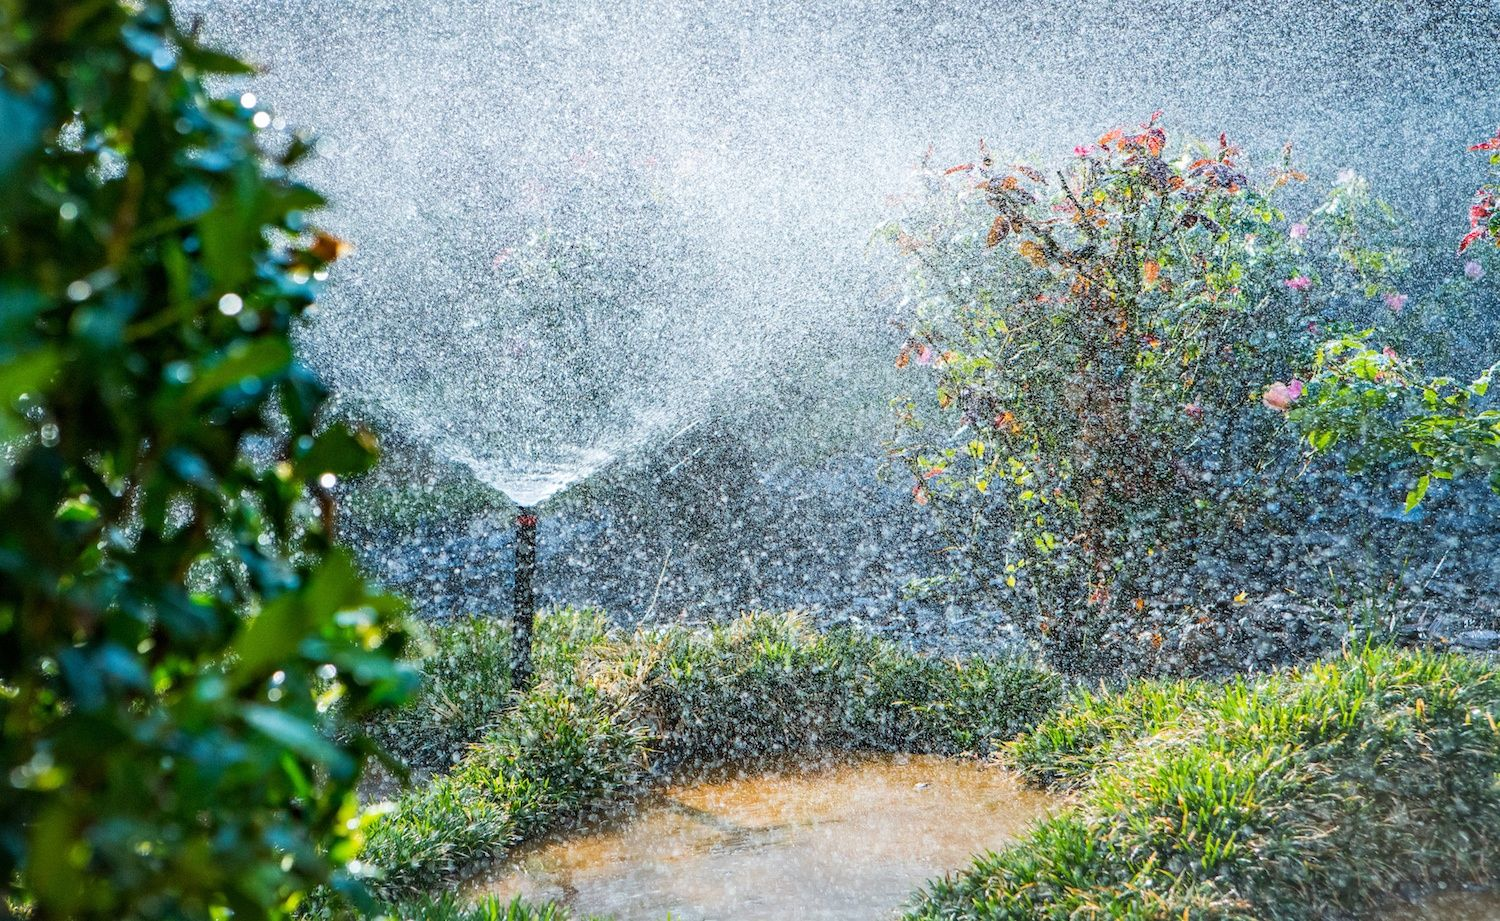 Irrigation watering lane and plants in Texas